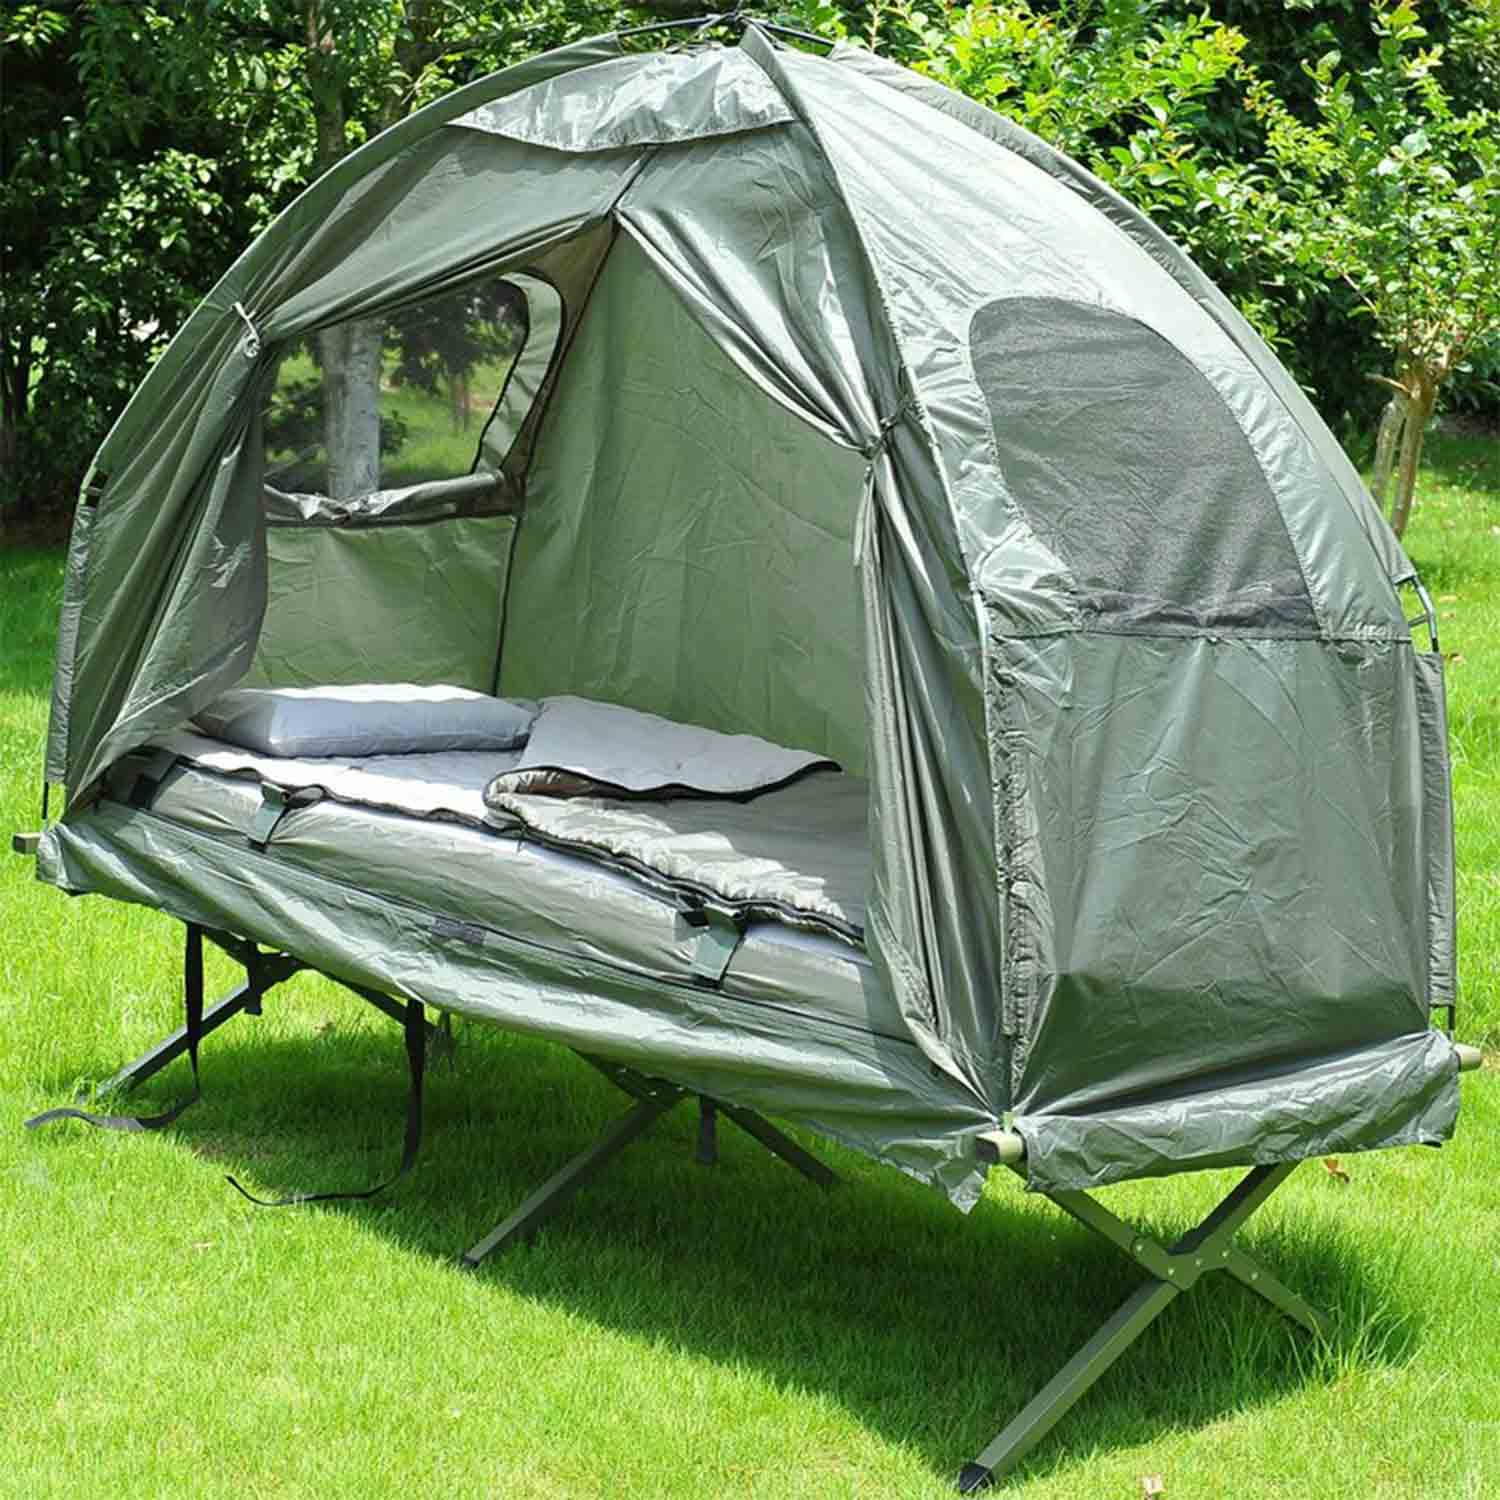 Army Green Deluxe 4-in-1 Compact Folding Dome Shelter Tent with Sleeping Bag Air Mattress Pillow